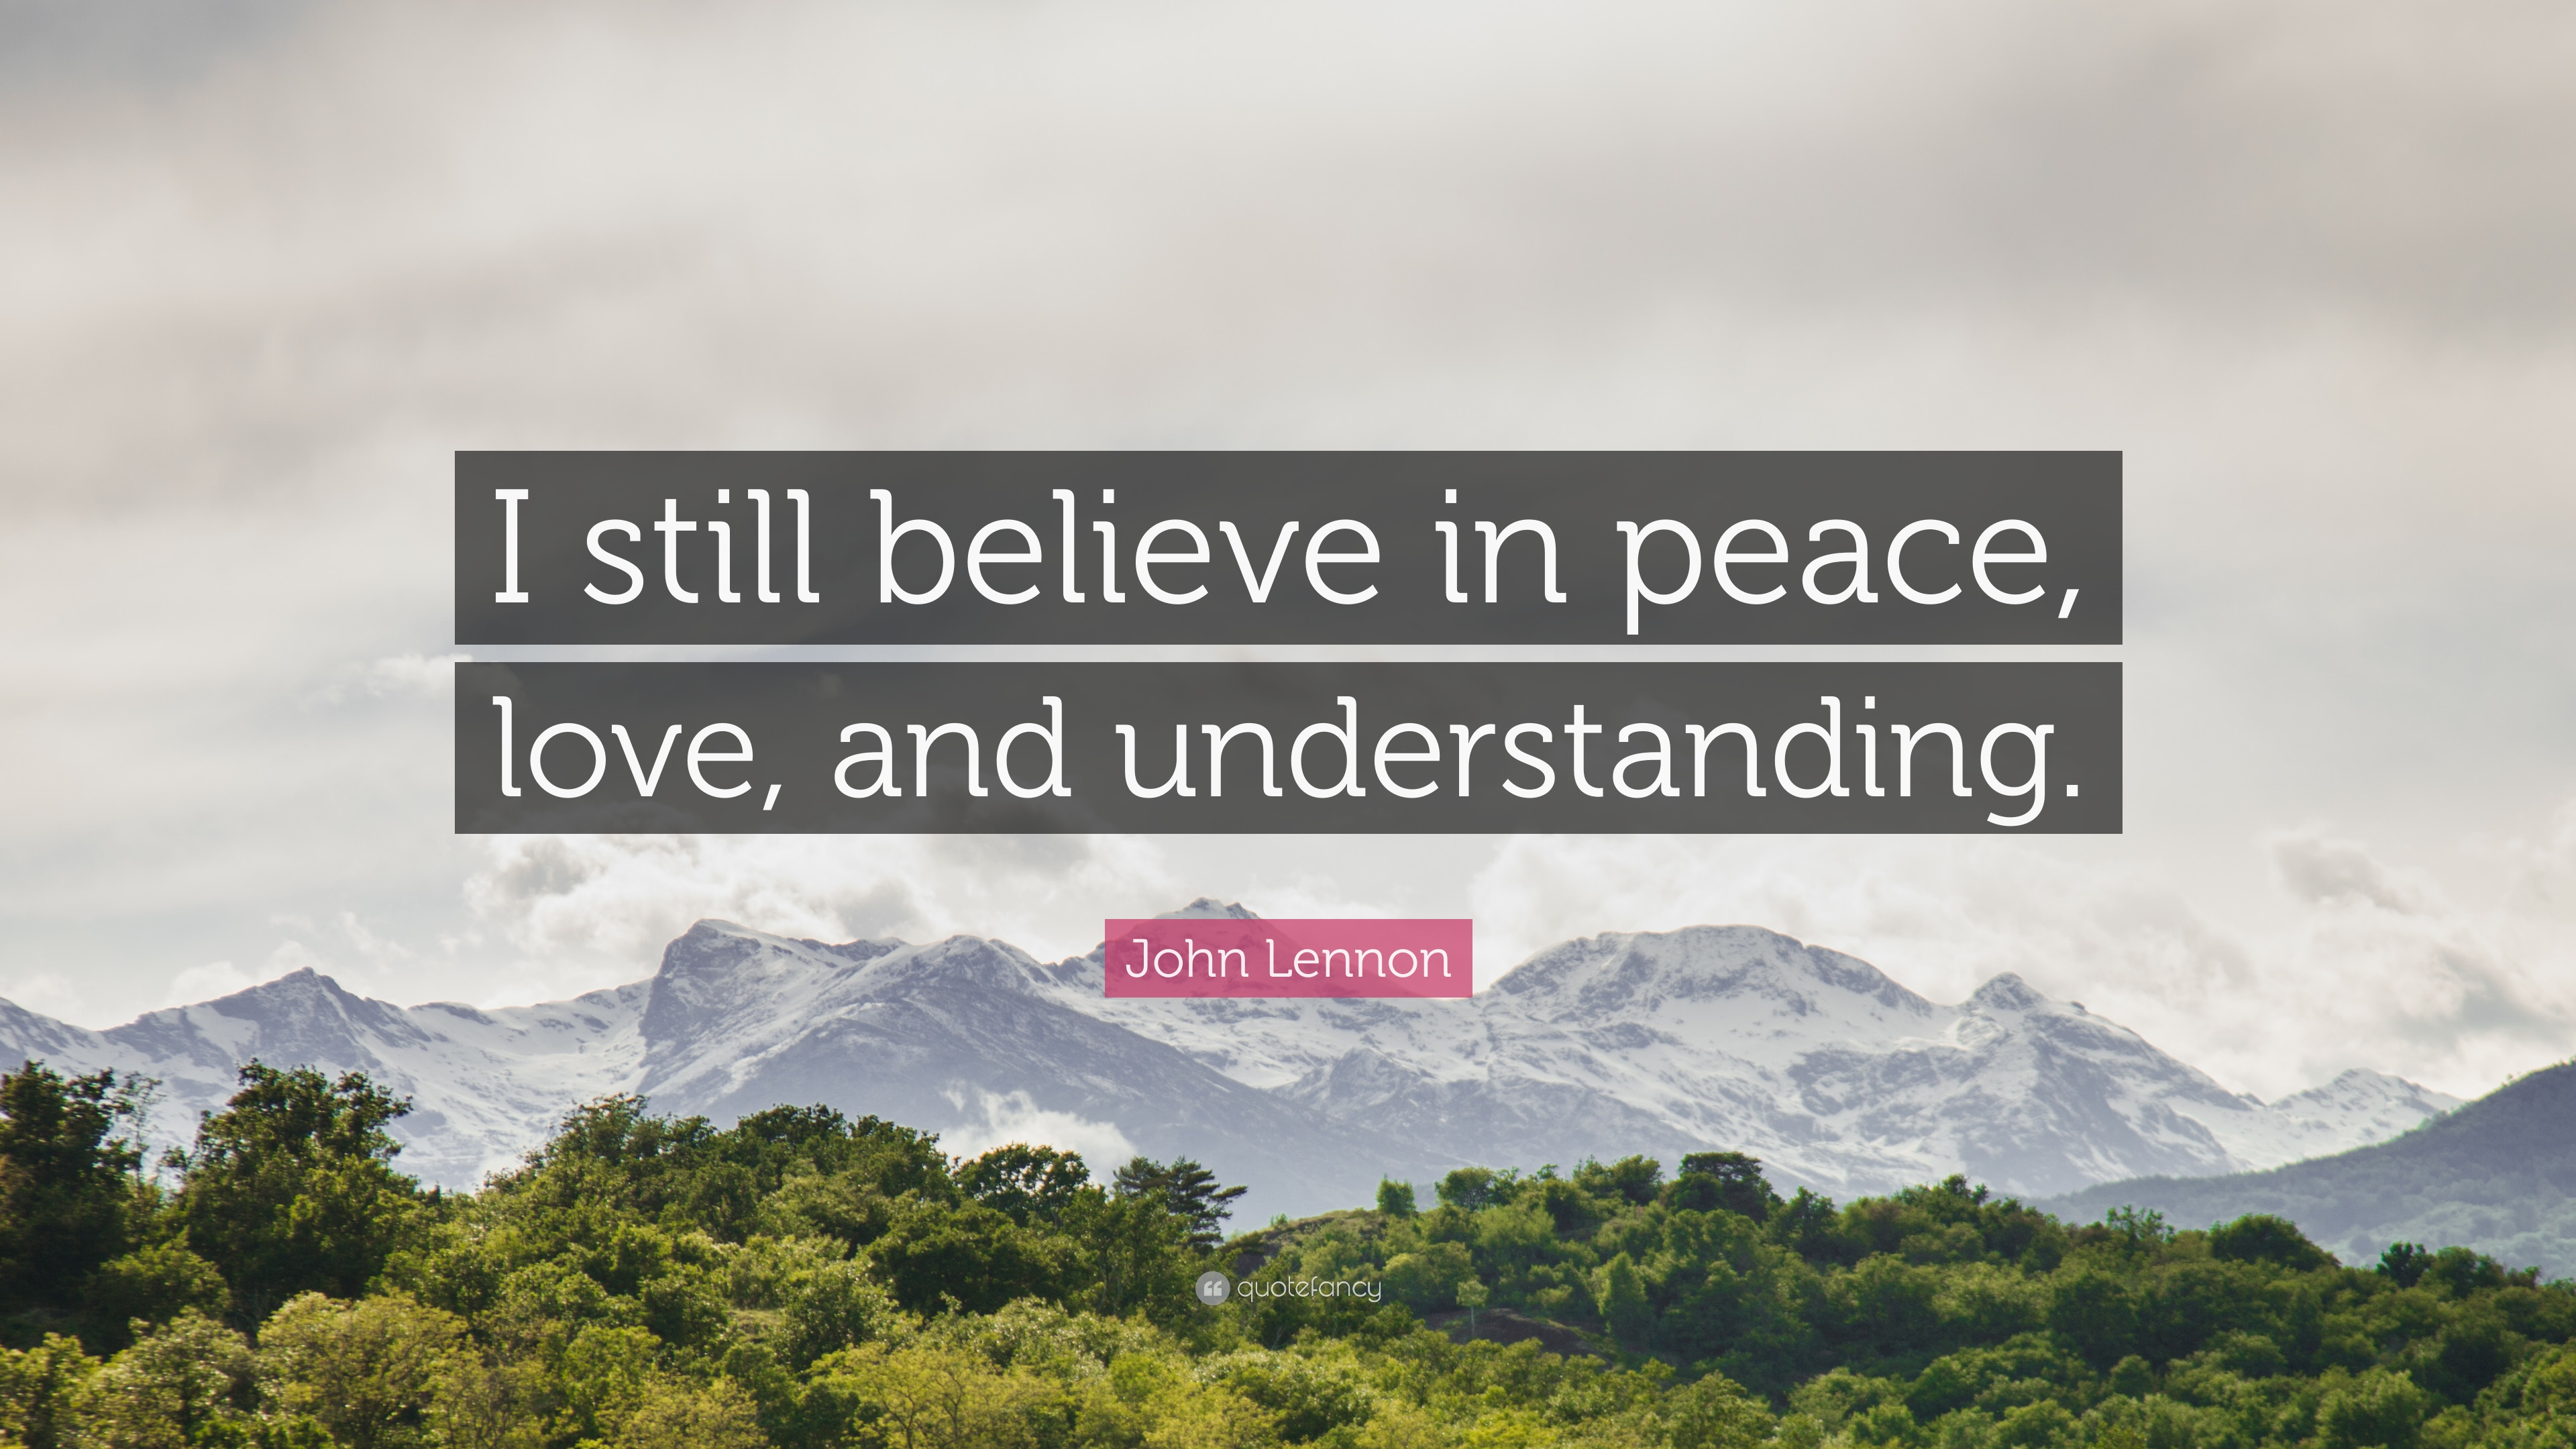 Quotes About Peace And Love Quotes About Peace Love And Understanding Quotes About Love And